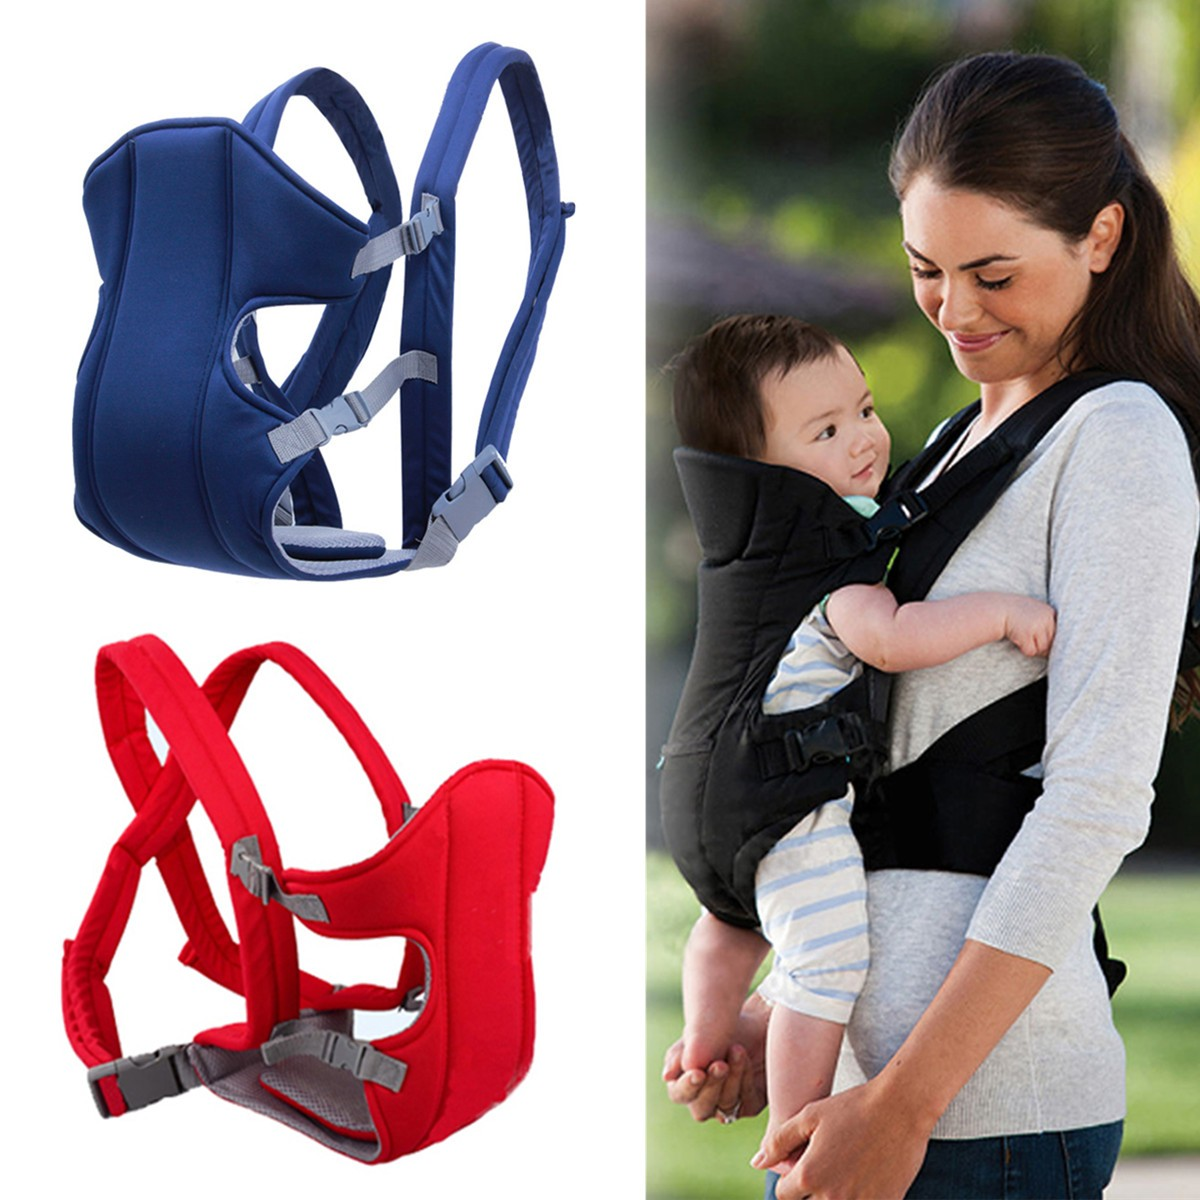 Jeteven Breathable Soft Infant Newborn Baby Carrier Backpack Front Back Rider Sling Comfort Wrap Bag,Rd color